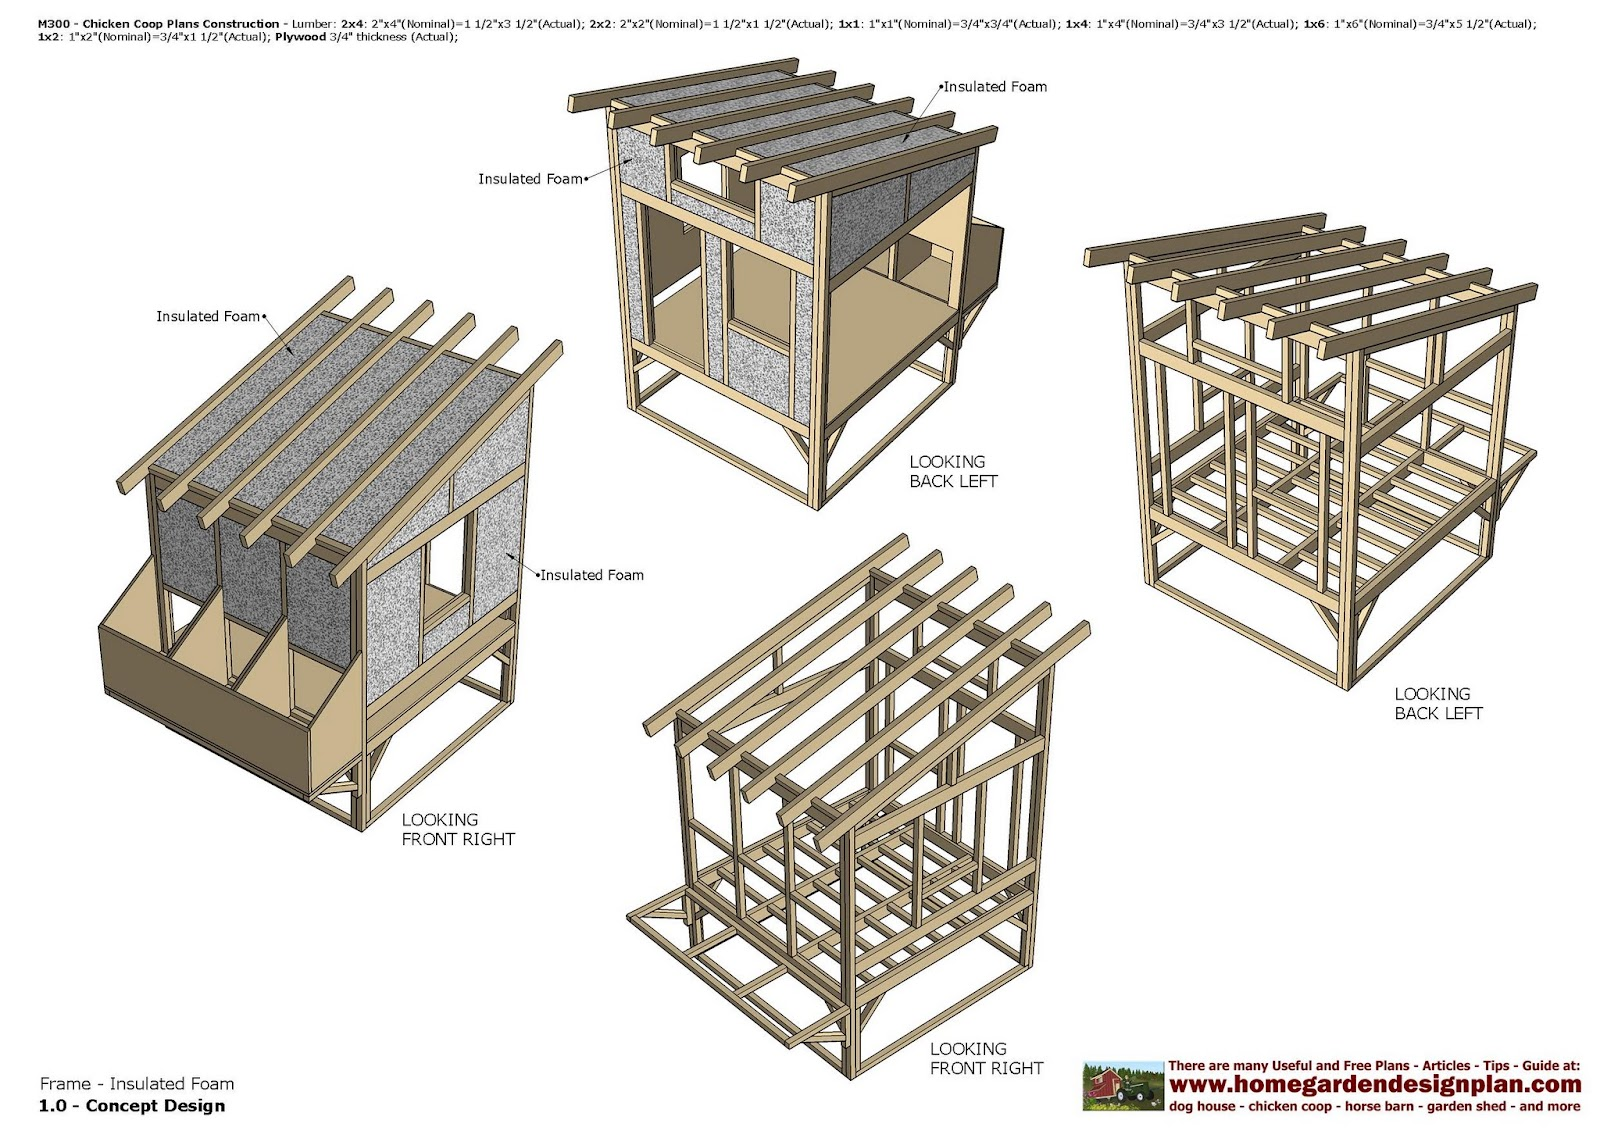 Home garden plans m300 chicken coop plans construction for Plans for a chicken coop for 12 chickens